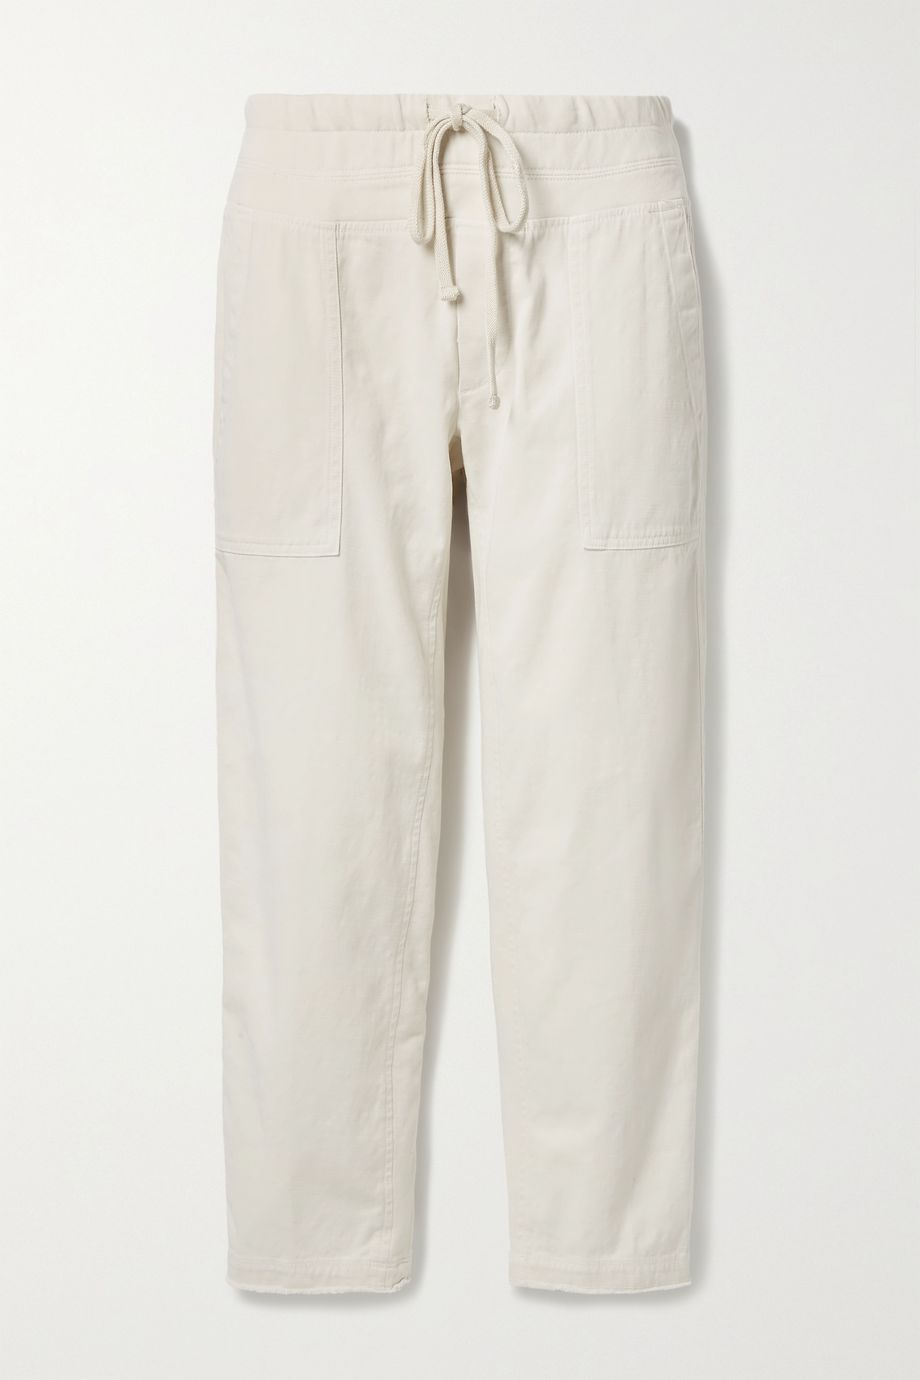 James Perse Cropped jersey-trimmed slub cotton-blend twill tapered pants